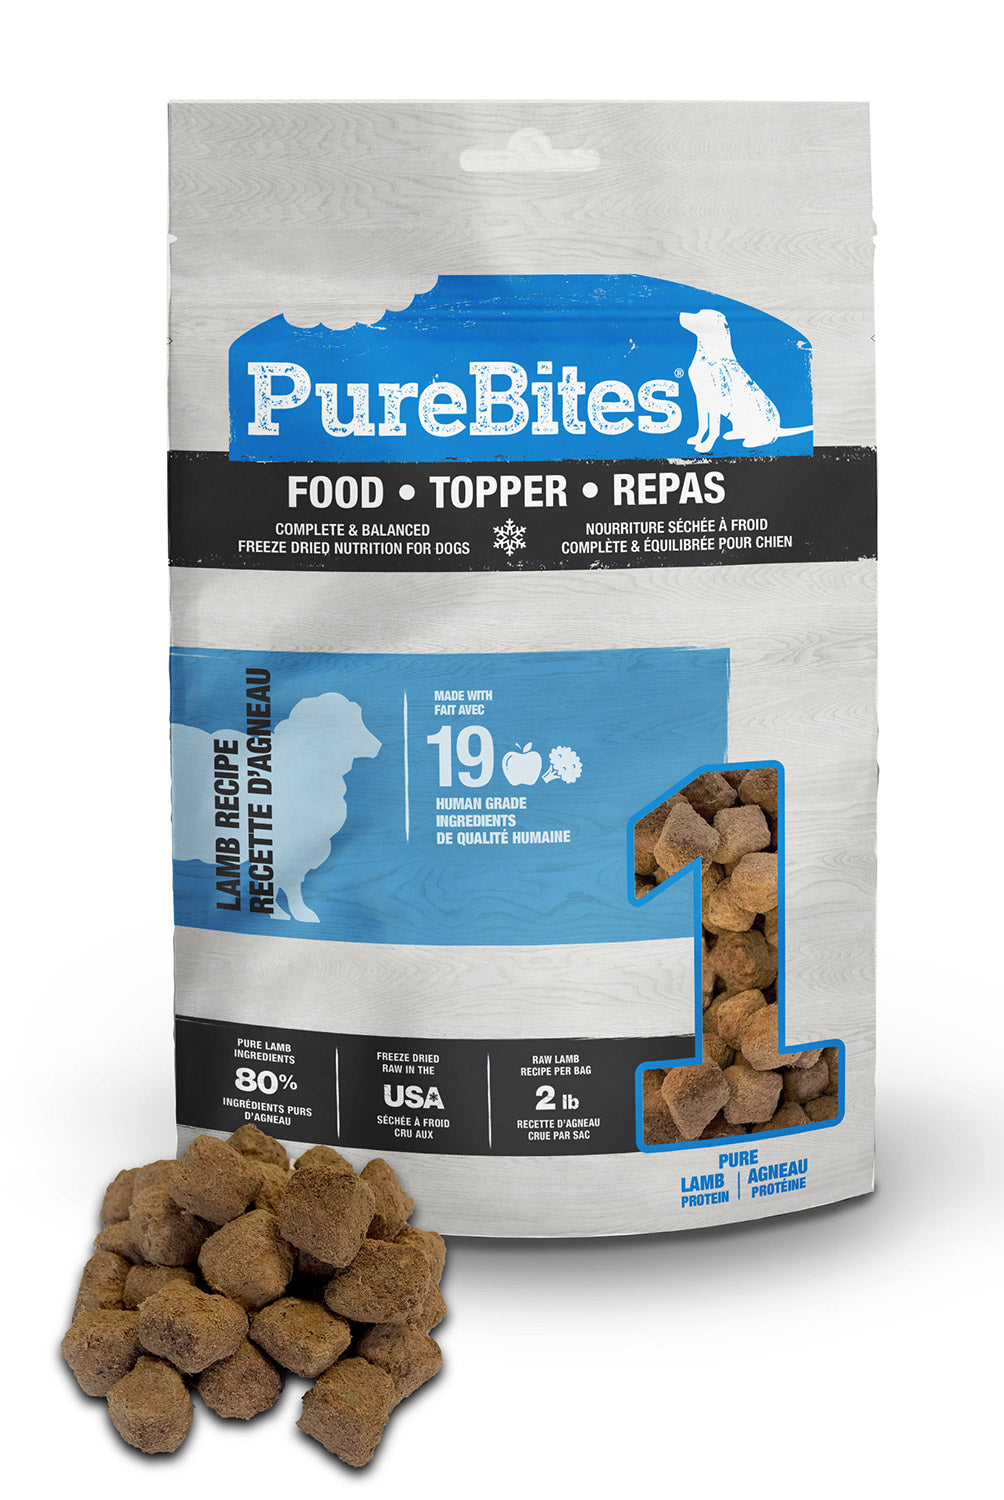 Purebites Raw Freeze Dried Dog Food or Mixer - Lamb